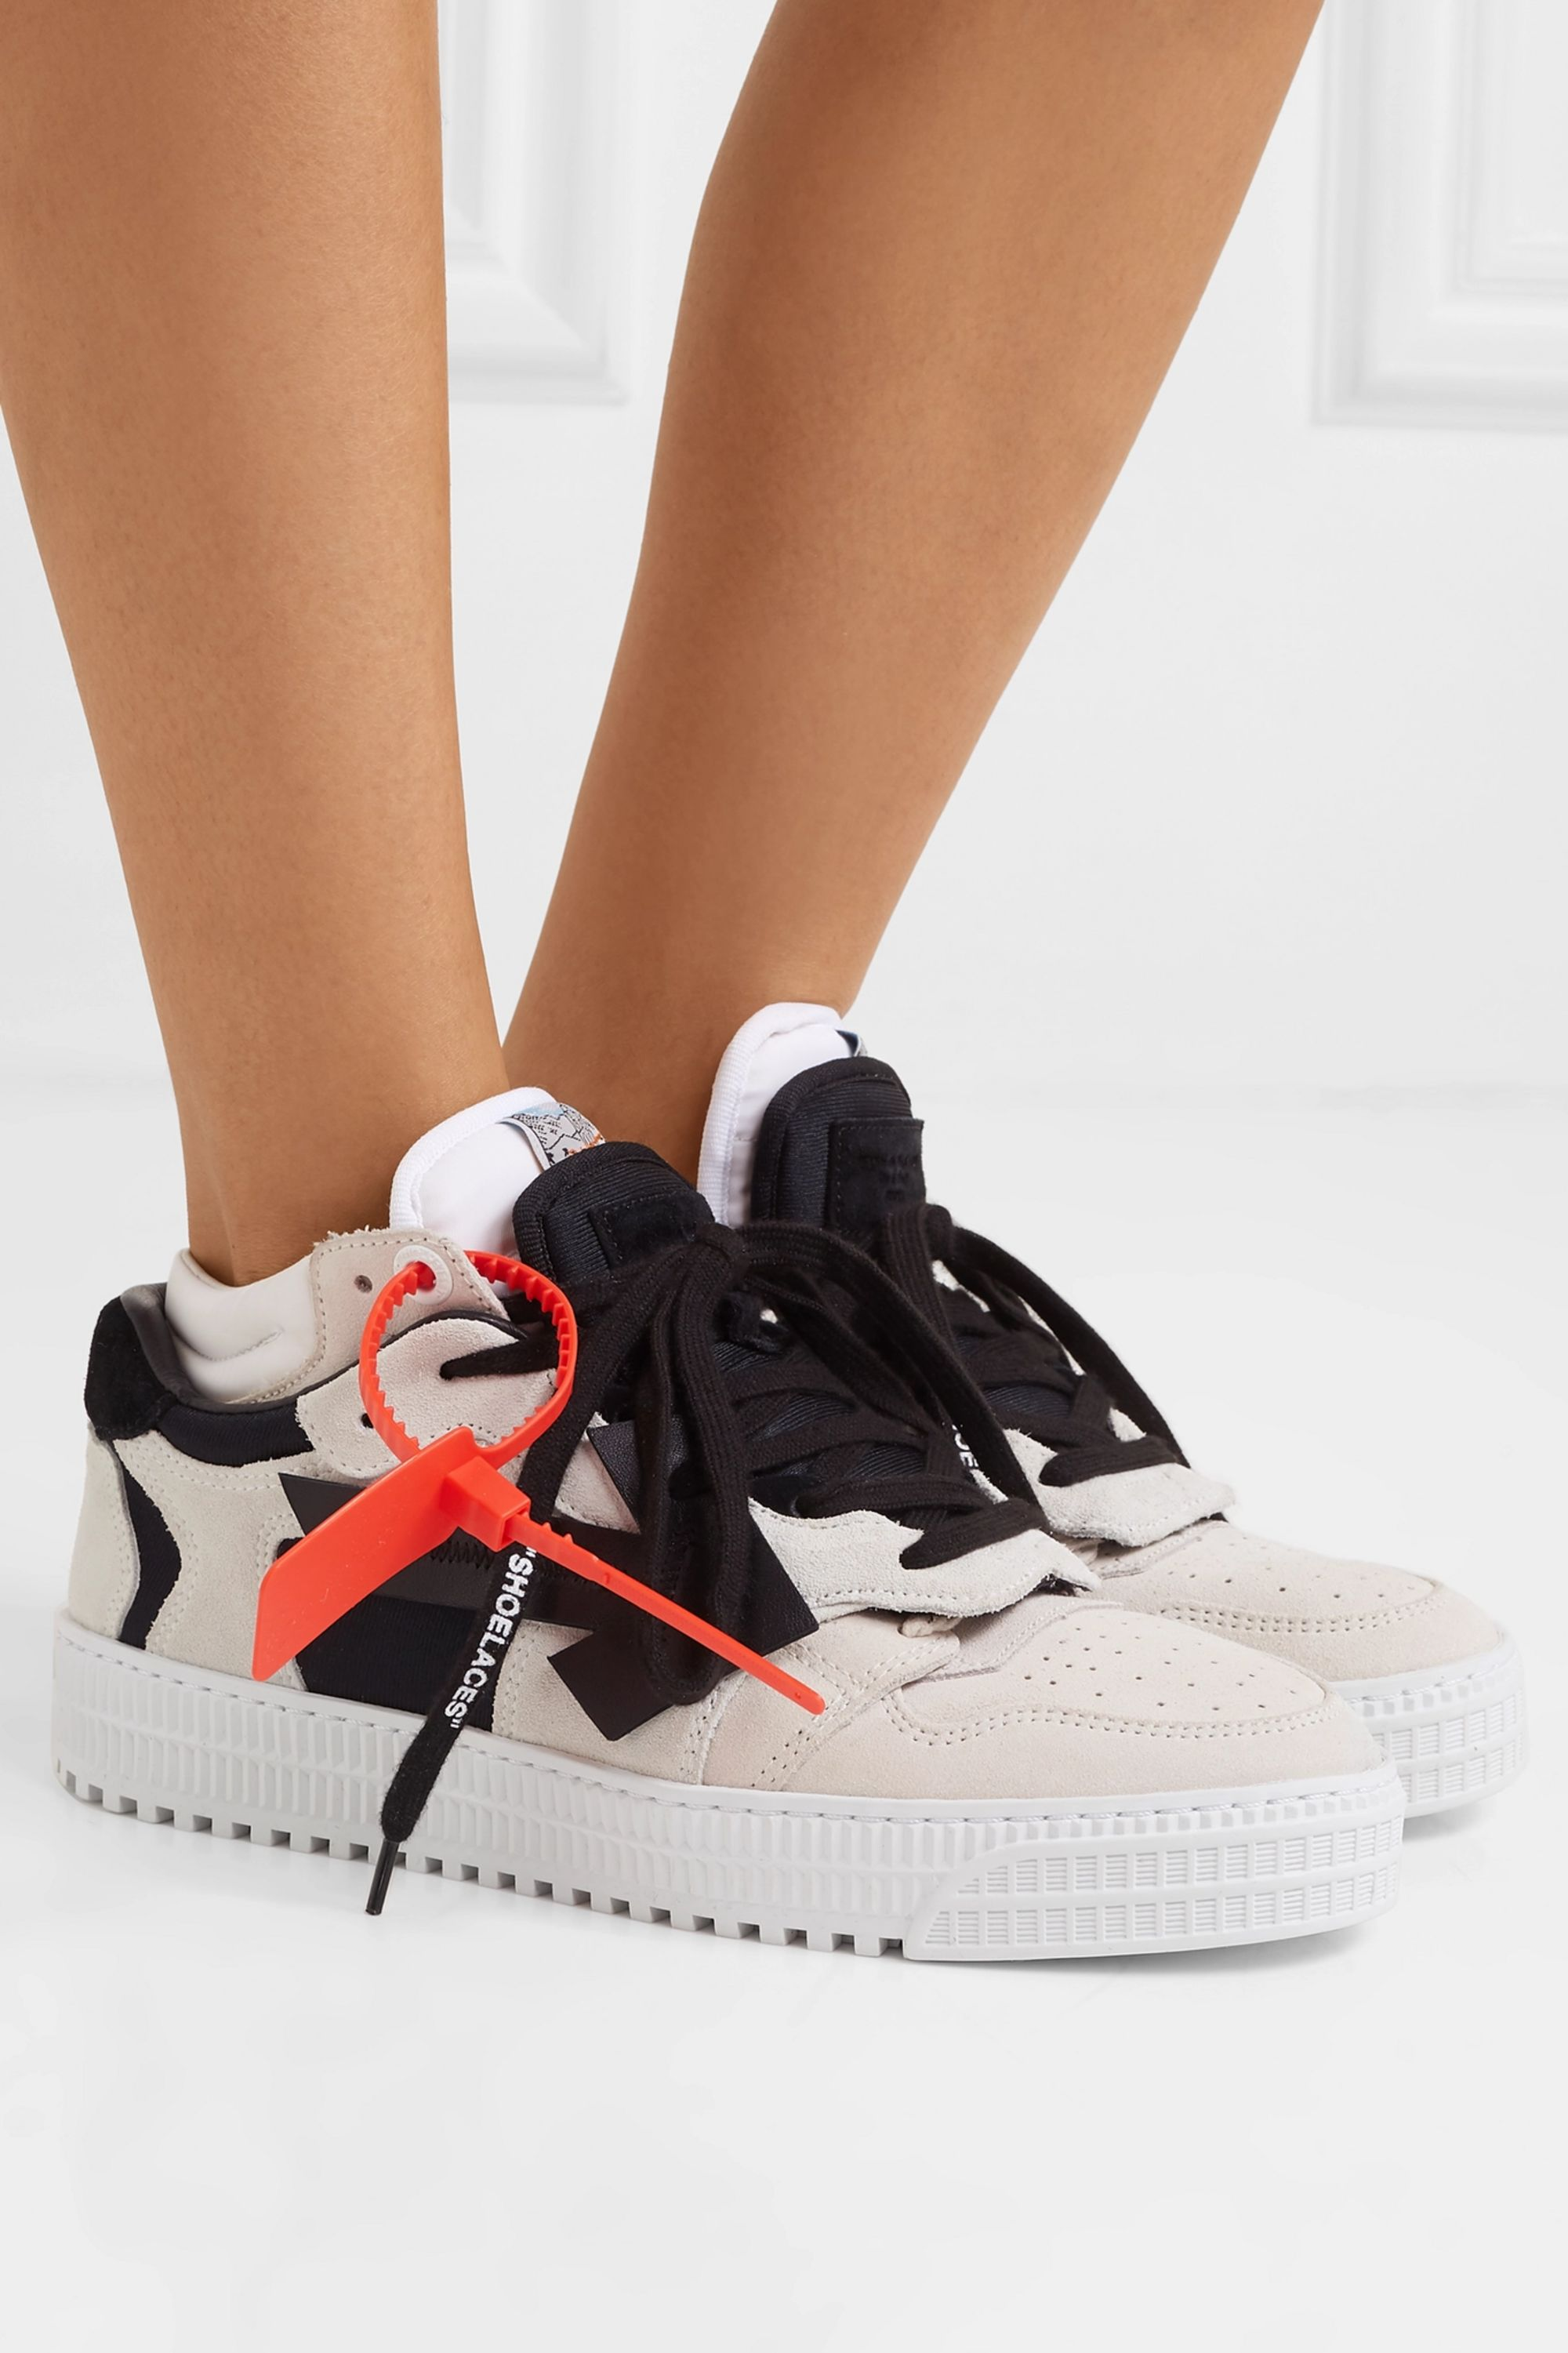 Off-white Suede and leather low-top